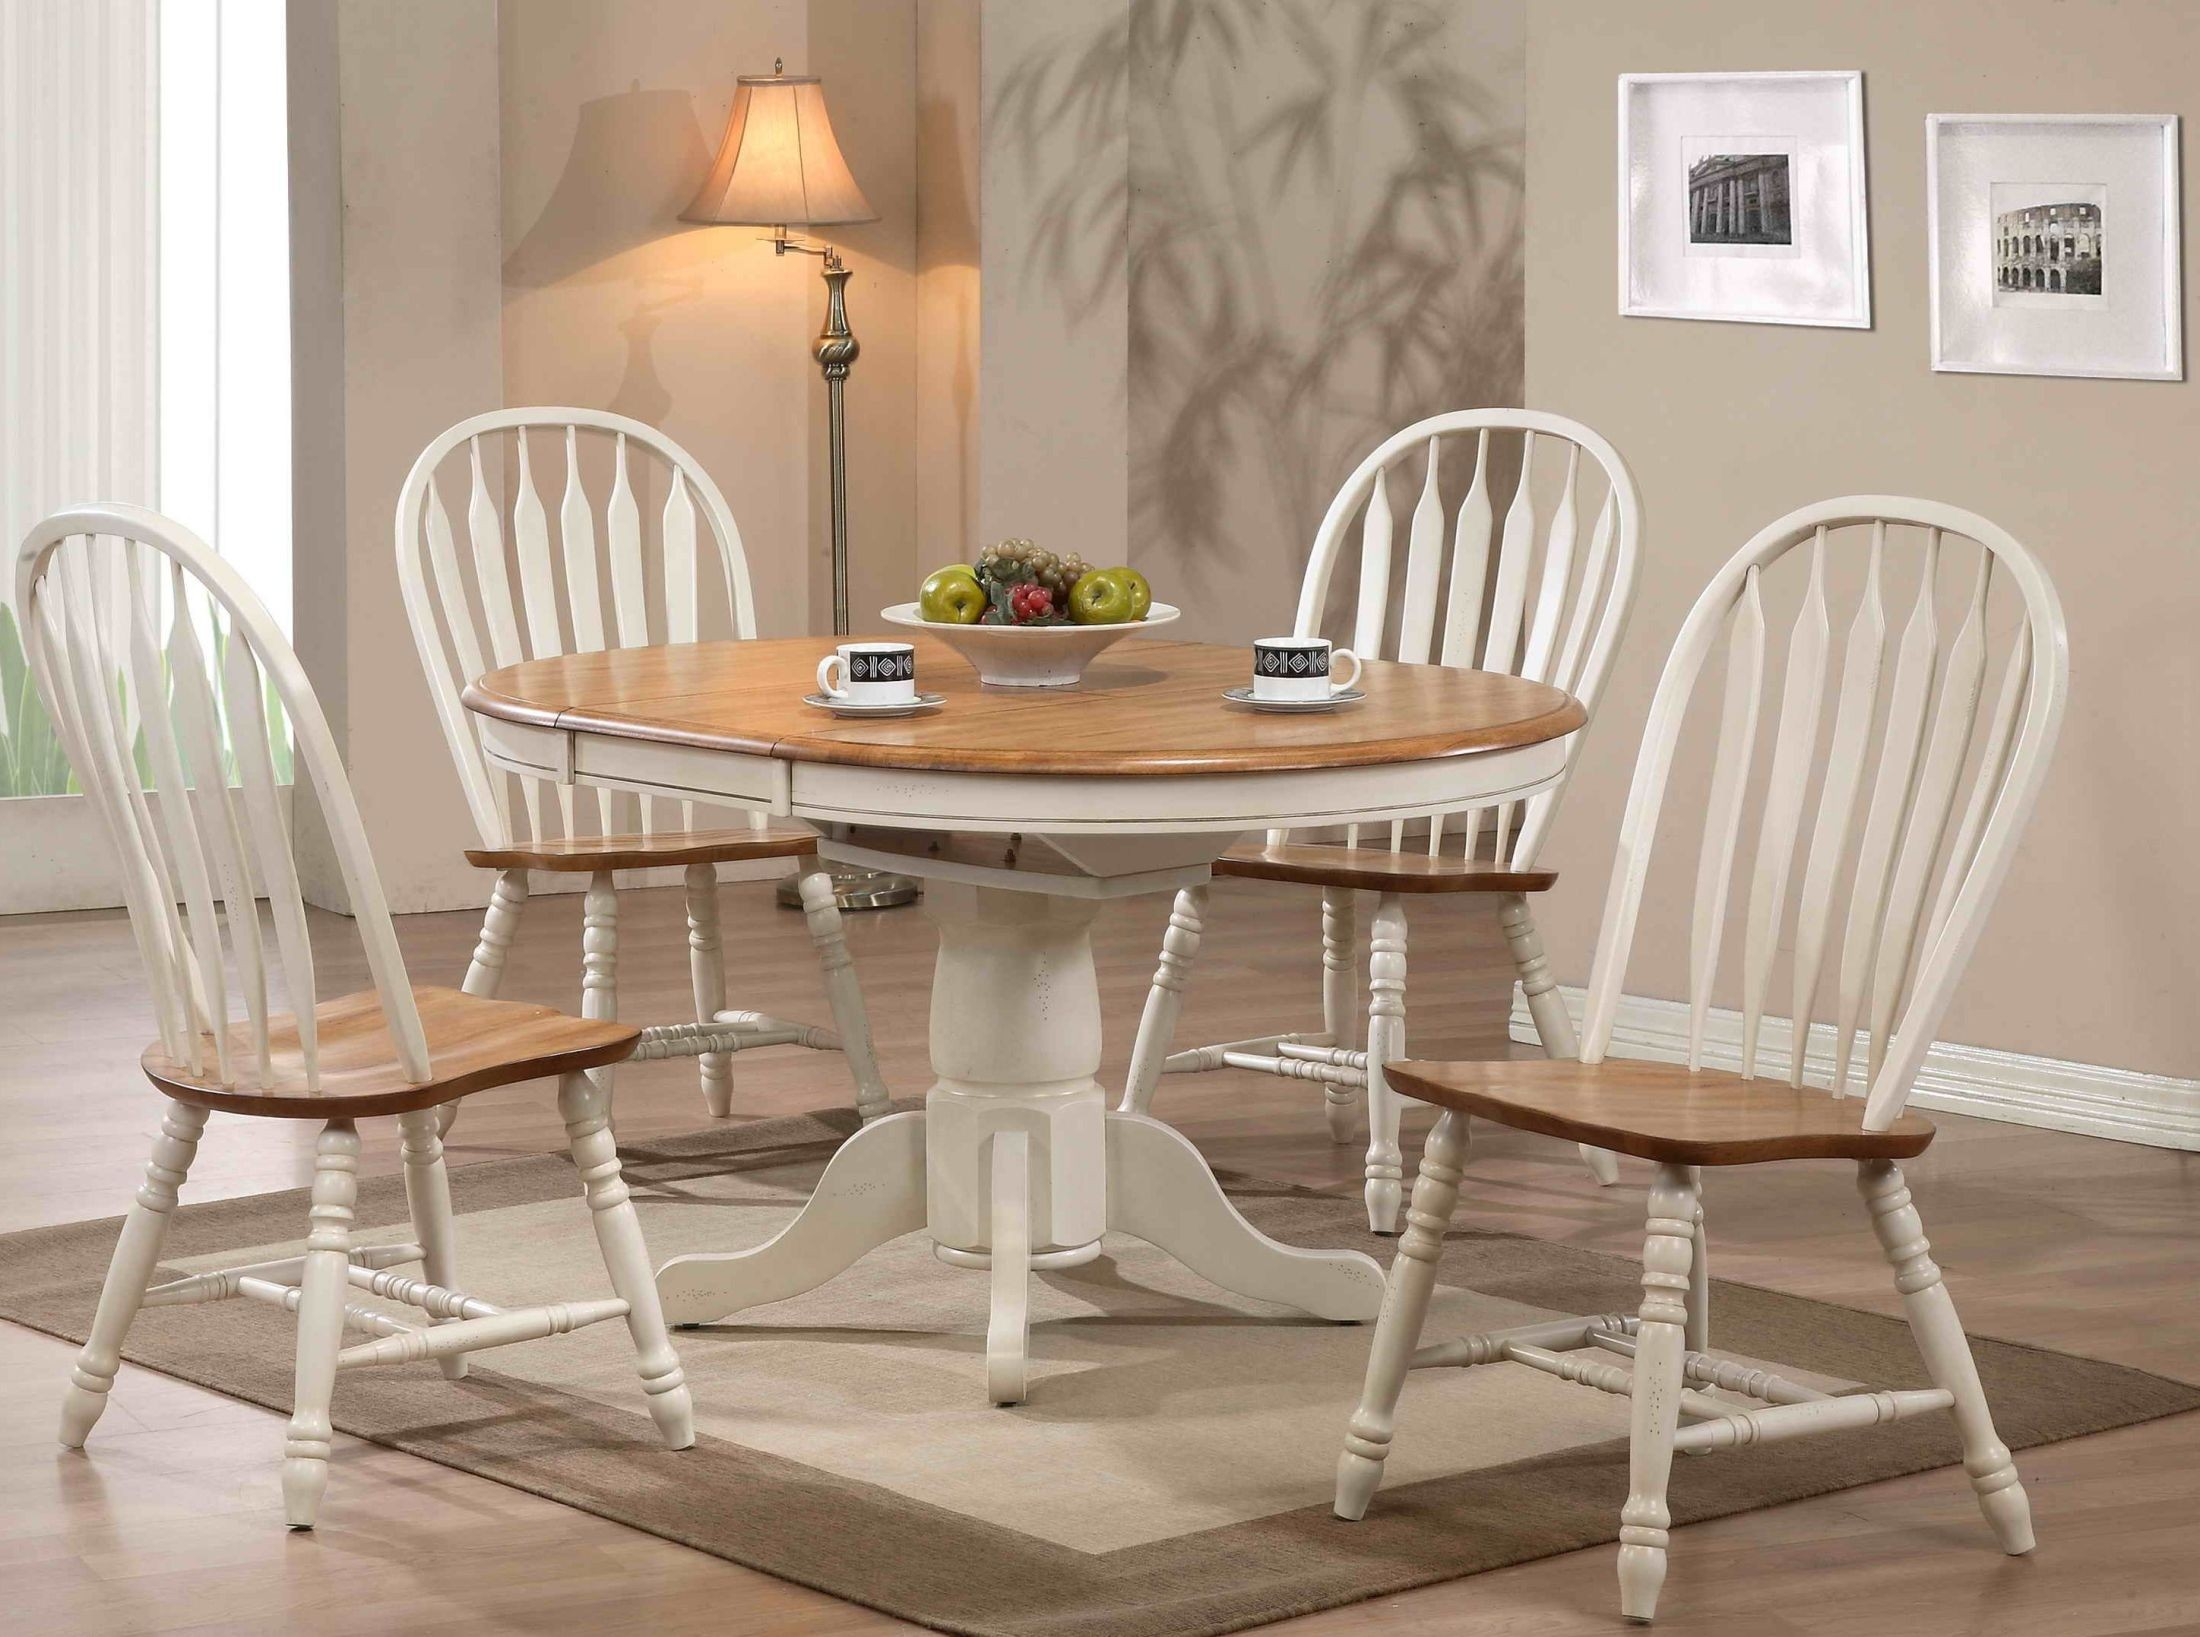 Missouri White Single Pedestal Dining Room Set From Eci